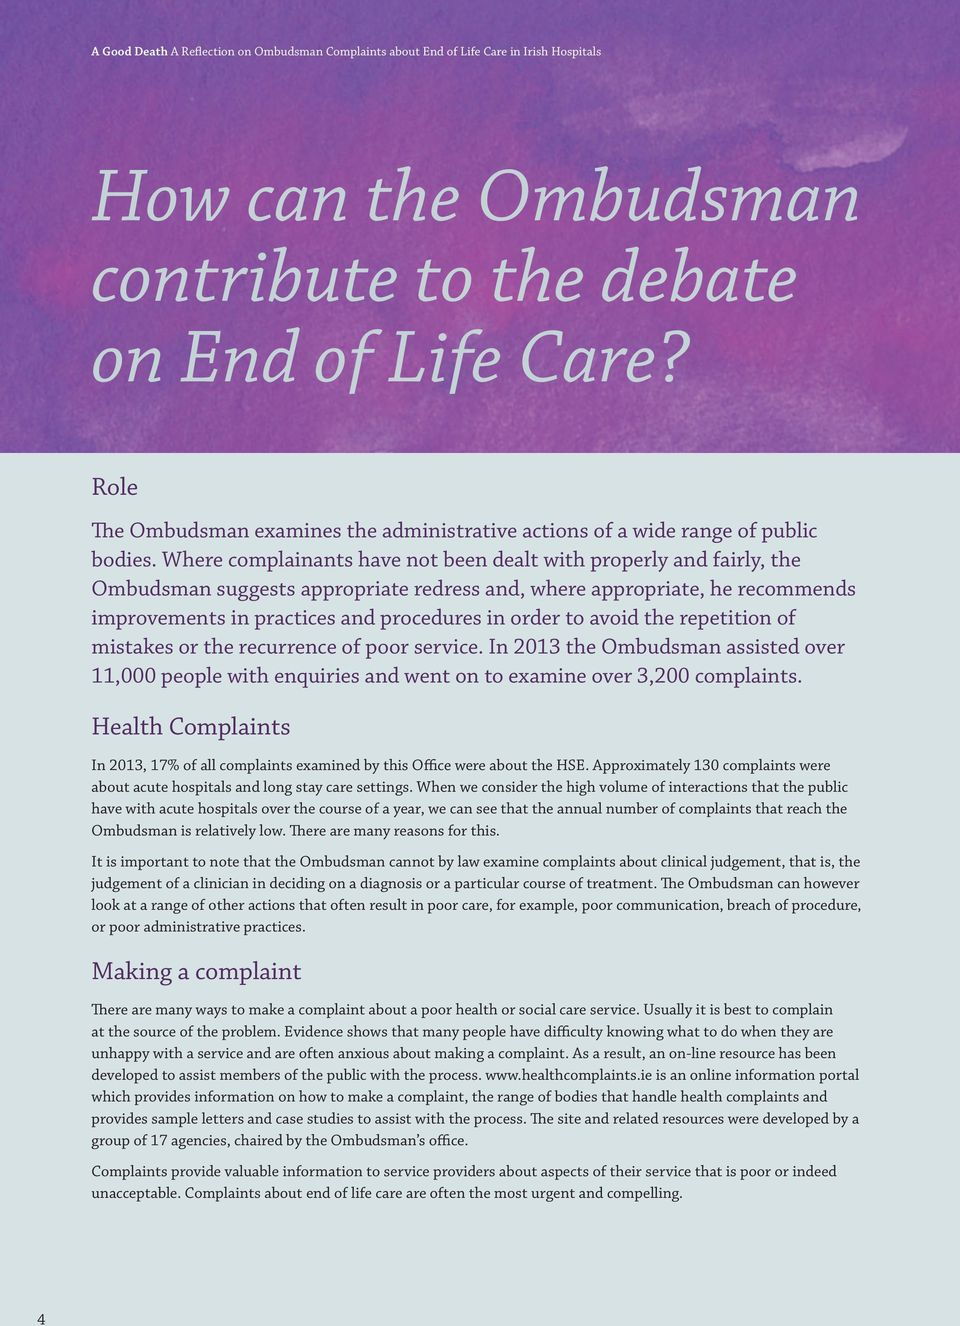 avoid the repetition of mistakes or the recurrence of poor service. In 2013 the Ombudsman assisted over 11,000 people with enquiries and went on to examine over 3,200 complaints.